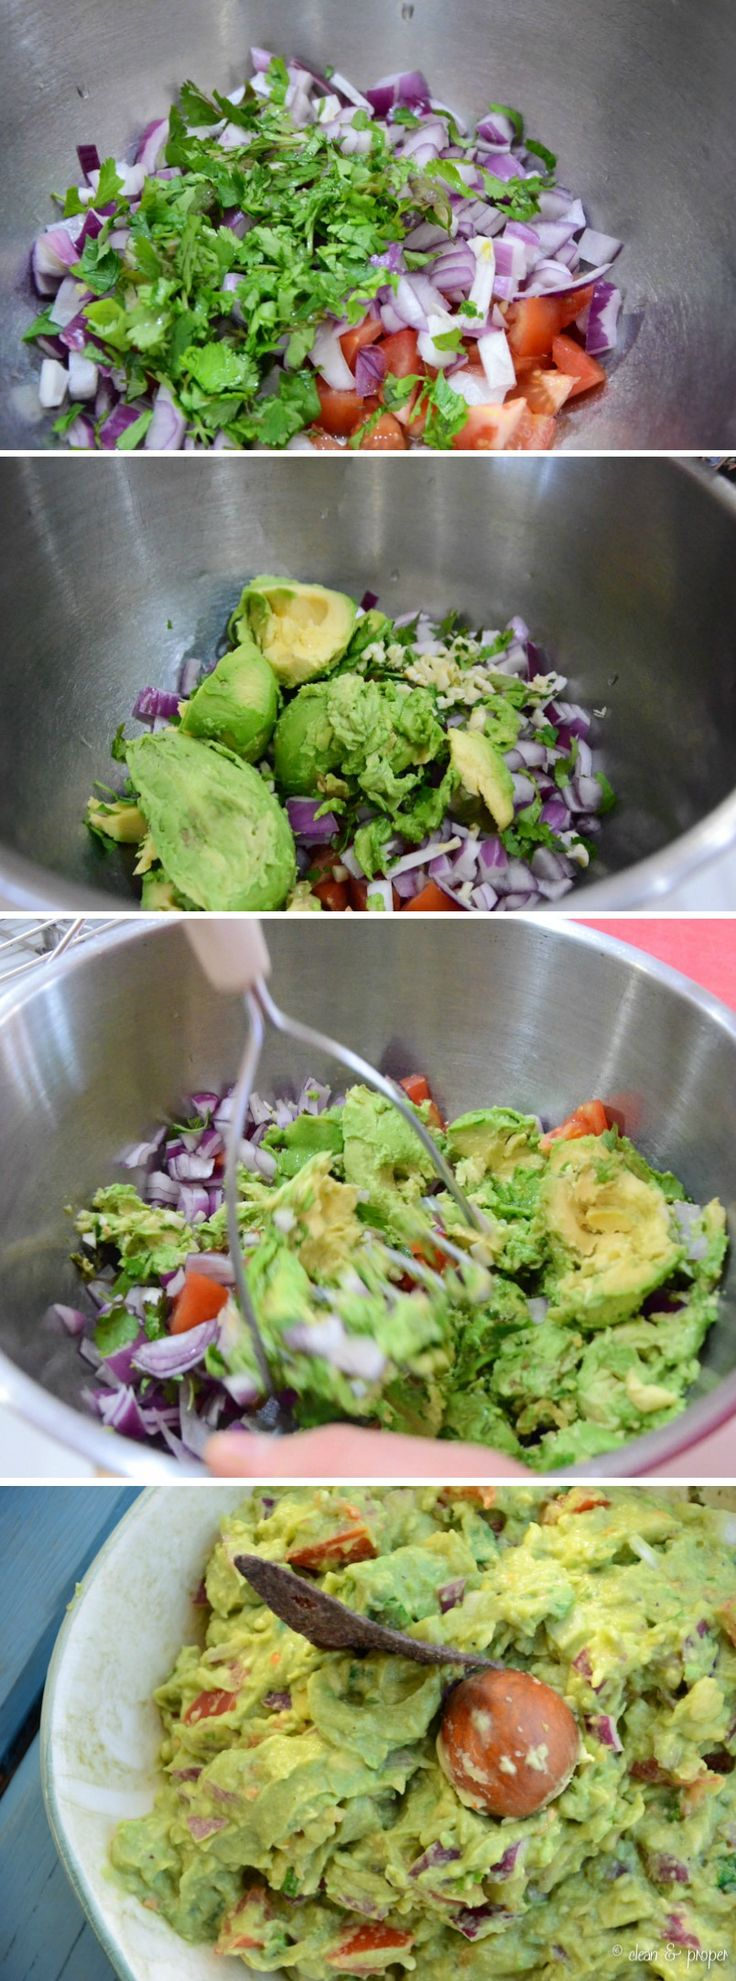 Easy guacamole. To kick it up a little you can add a seeded diced jalapeño or serano pepper. Enjoy!